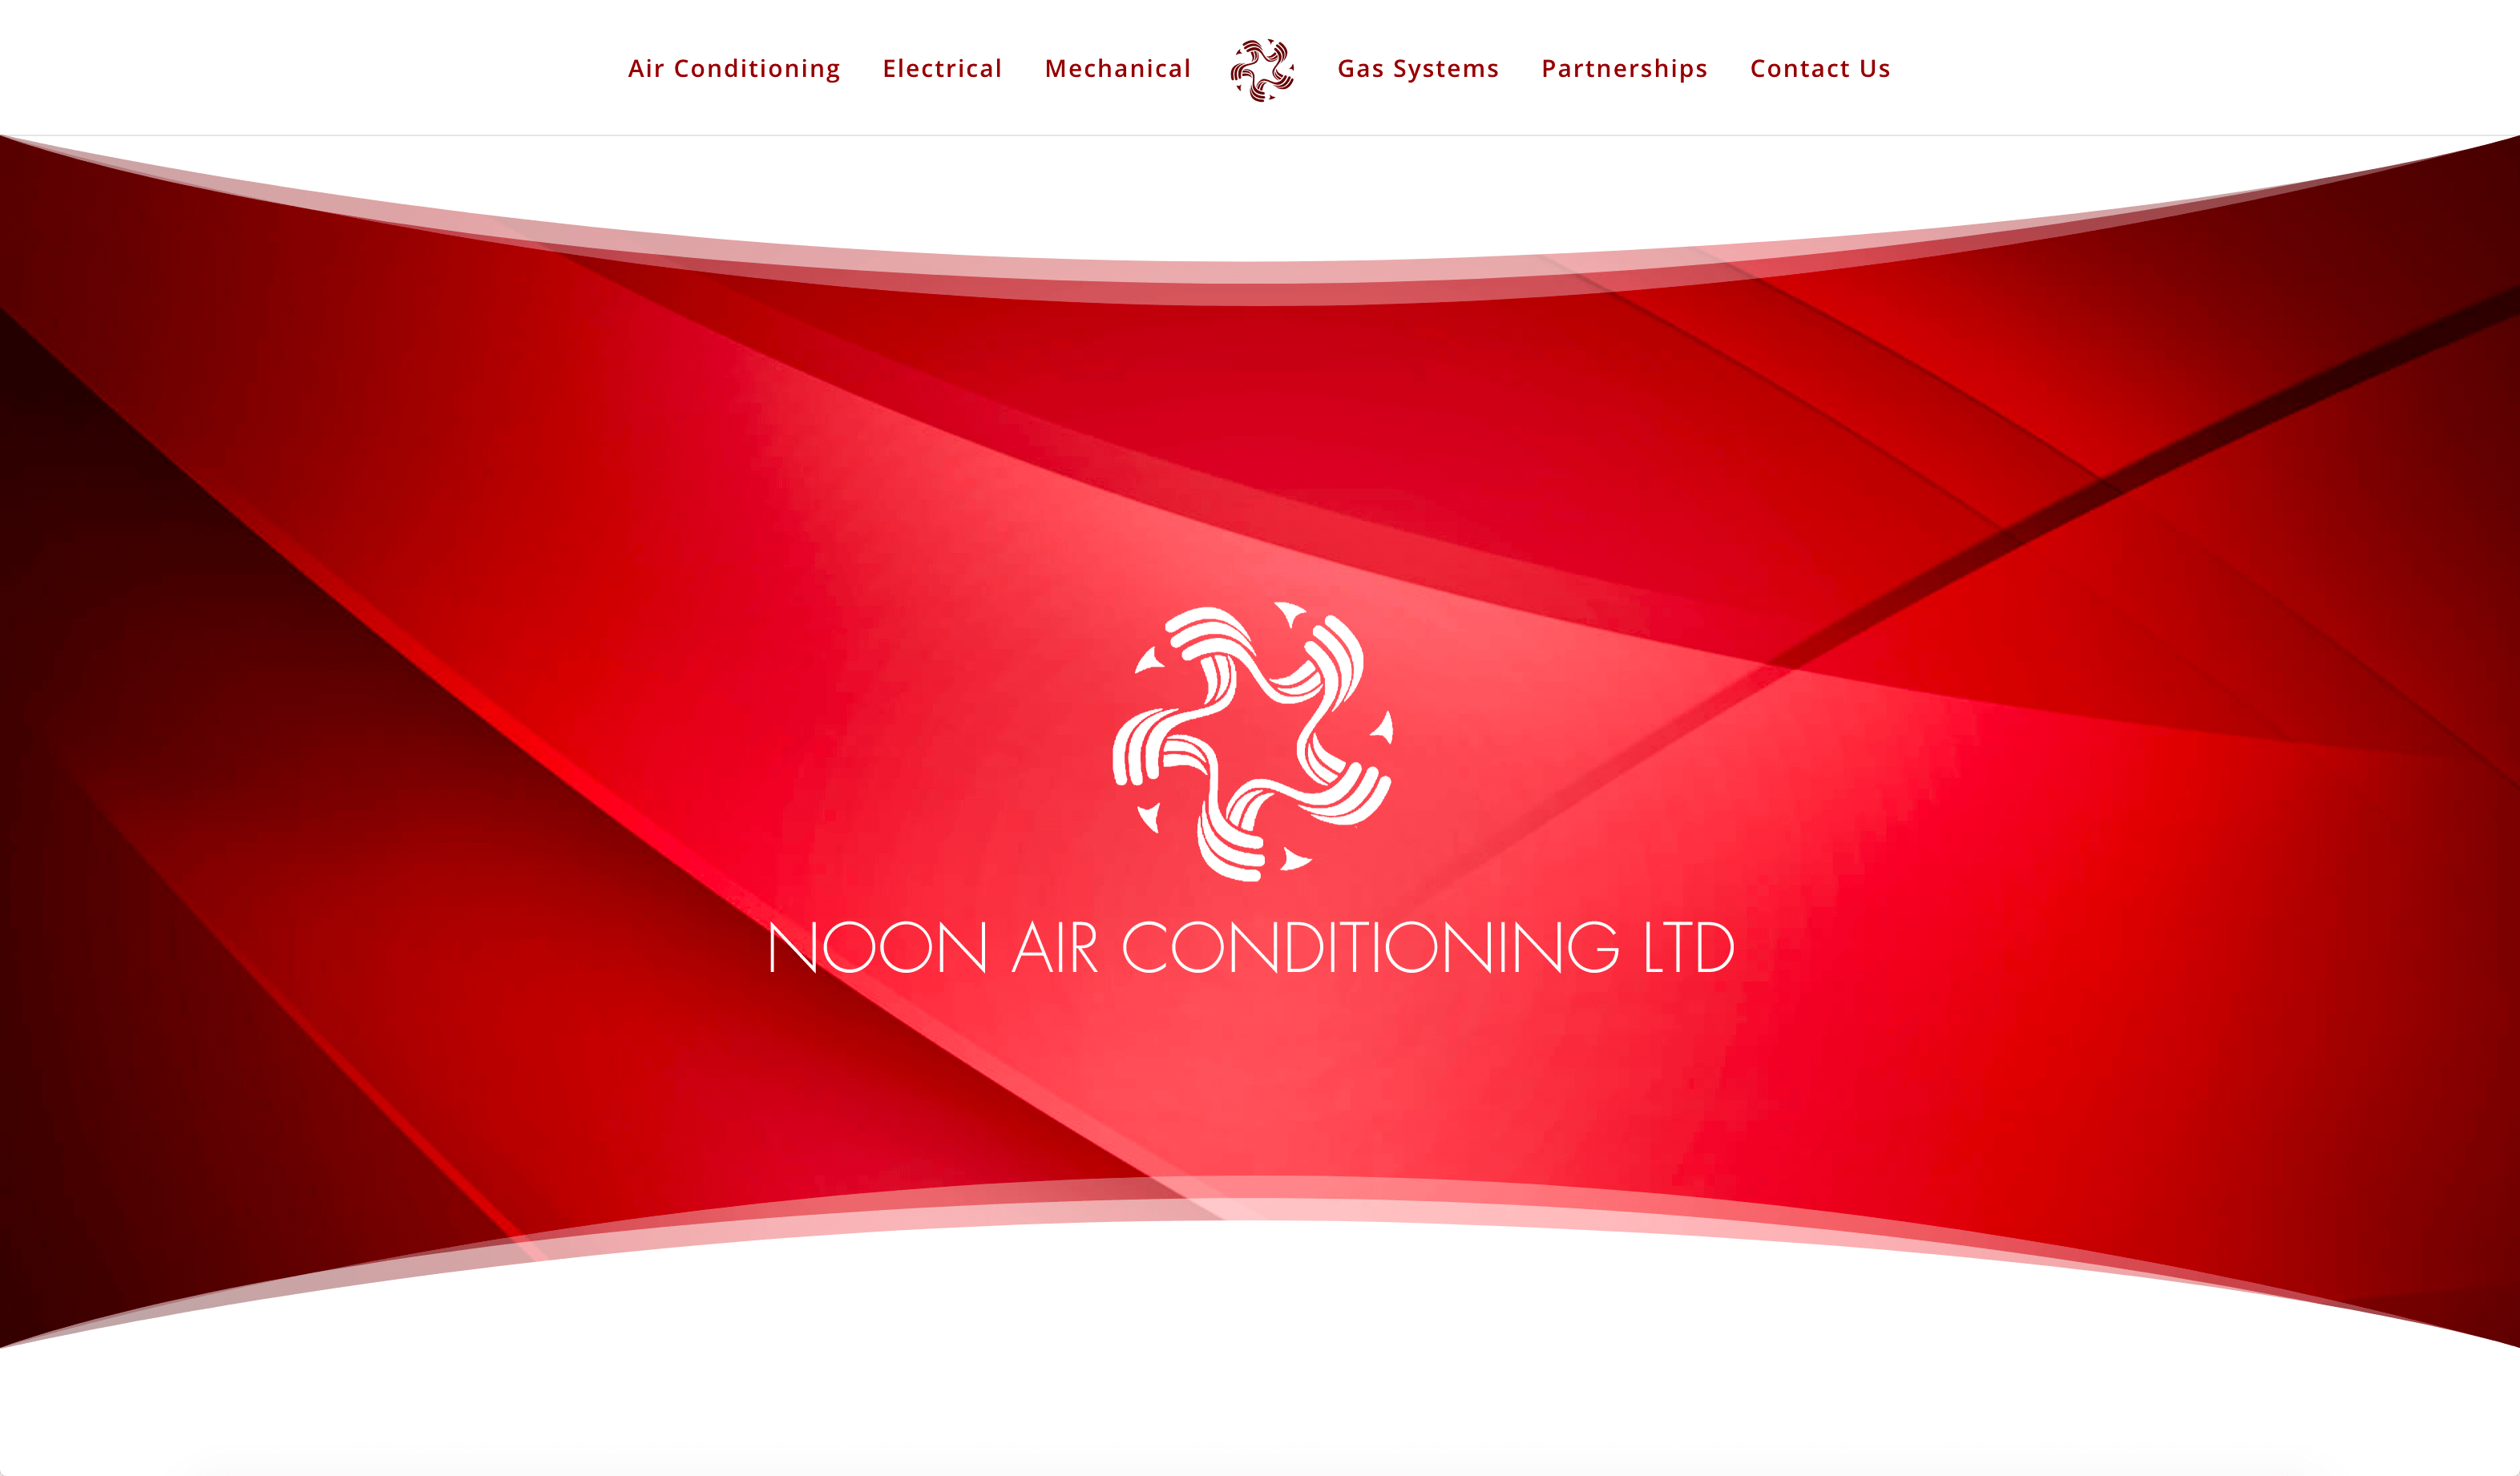 The Noon Air Conditioning Website